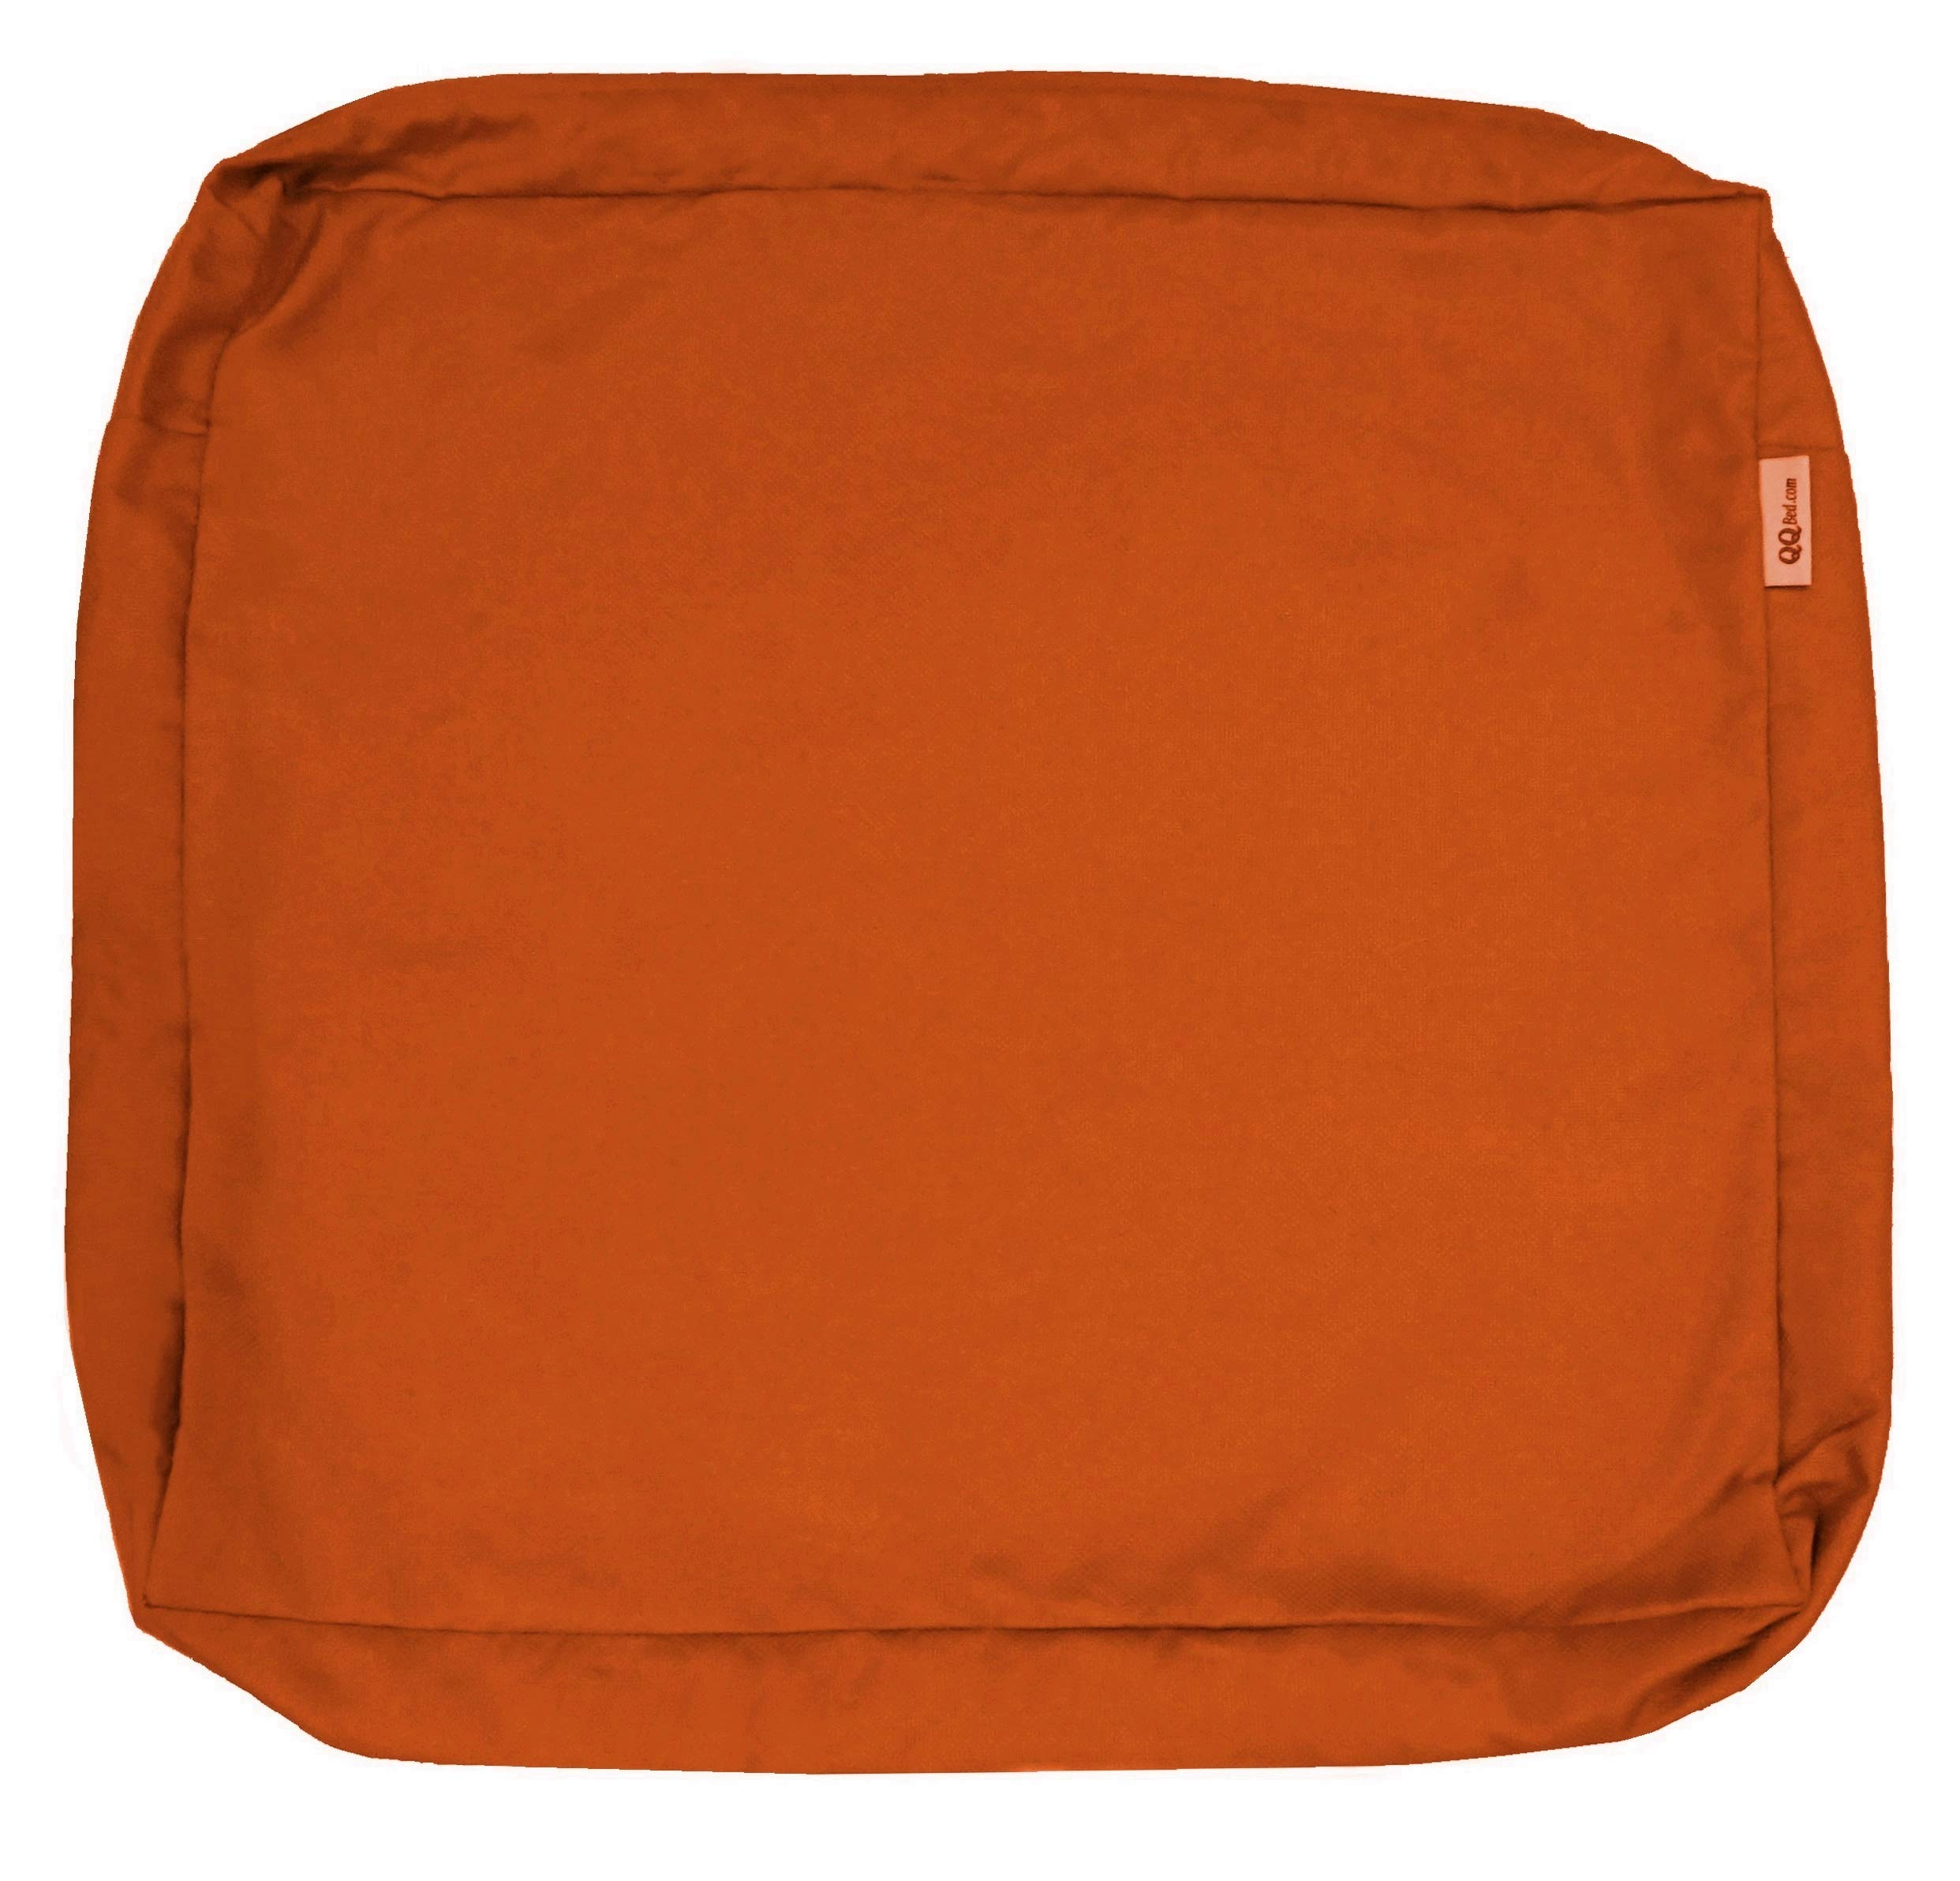 QQbed Outdoor Patio Chair Washable Cushion Pillow Seat Covers Extra Large 24''X22''X4'' - Replacement Covers Only (24''X22''X4'' 6 Pack, Rust)